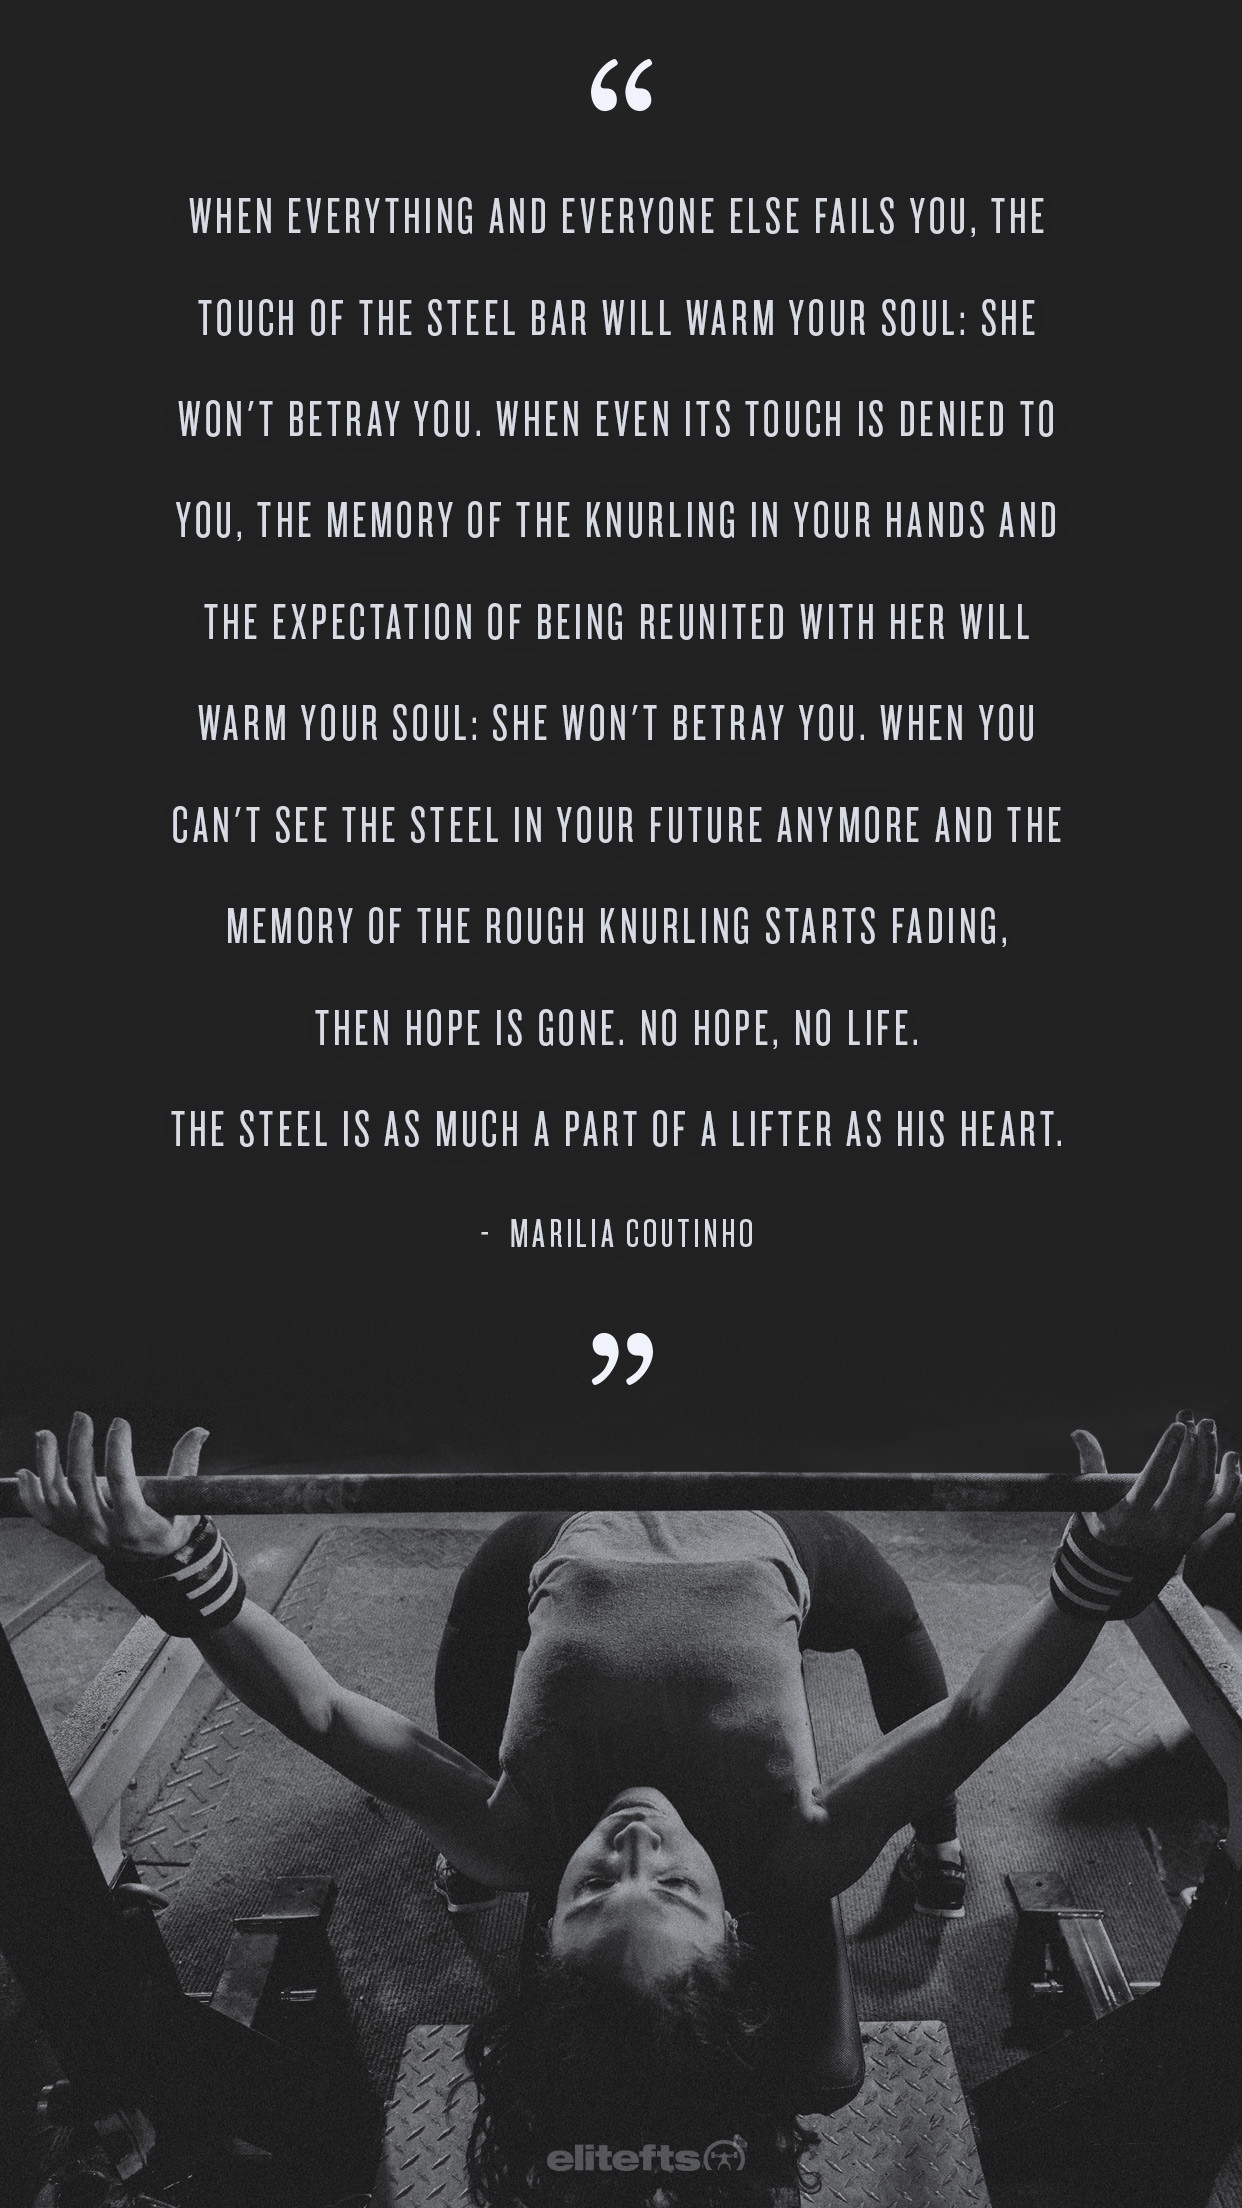 Crossfit Wallpapers 67 images 1242x2208